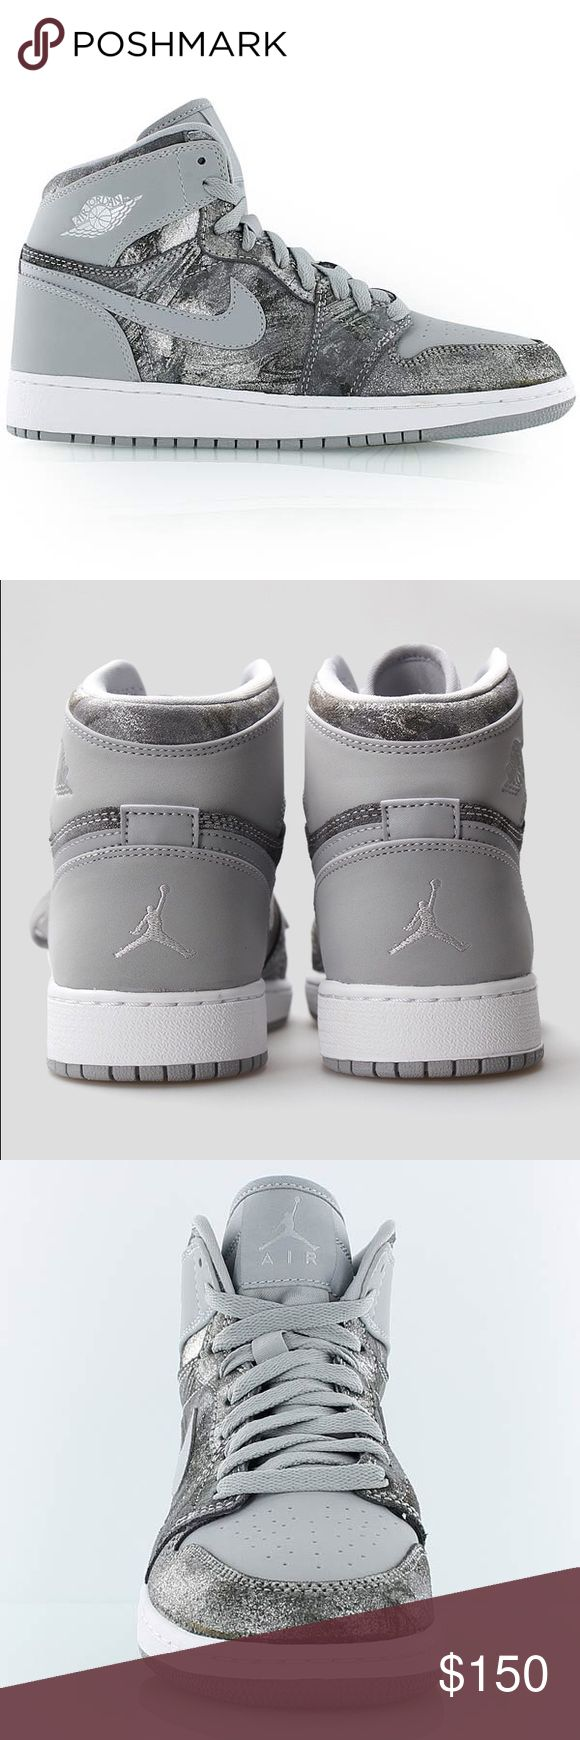 new concept 87933 b66ef ... Jordans grade school girls size, simply subtract AIR JORDAN 1 RETRO  HIGH WOLF GREY NIKE SHOES Brand new with box, ...